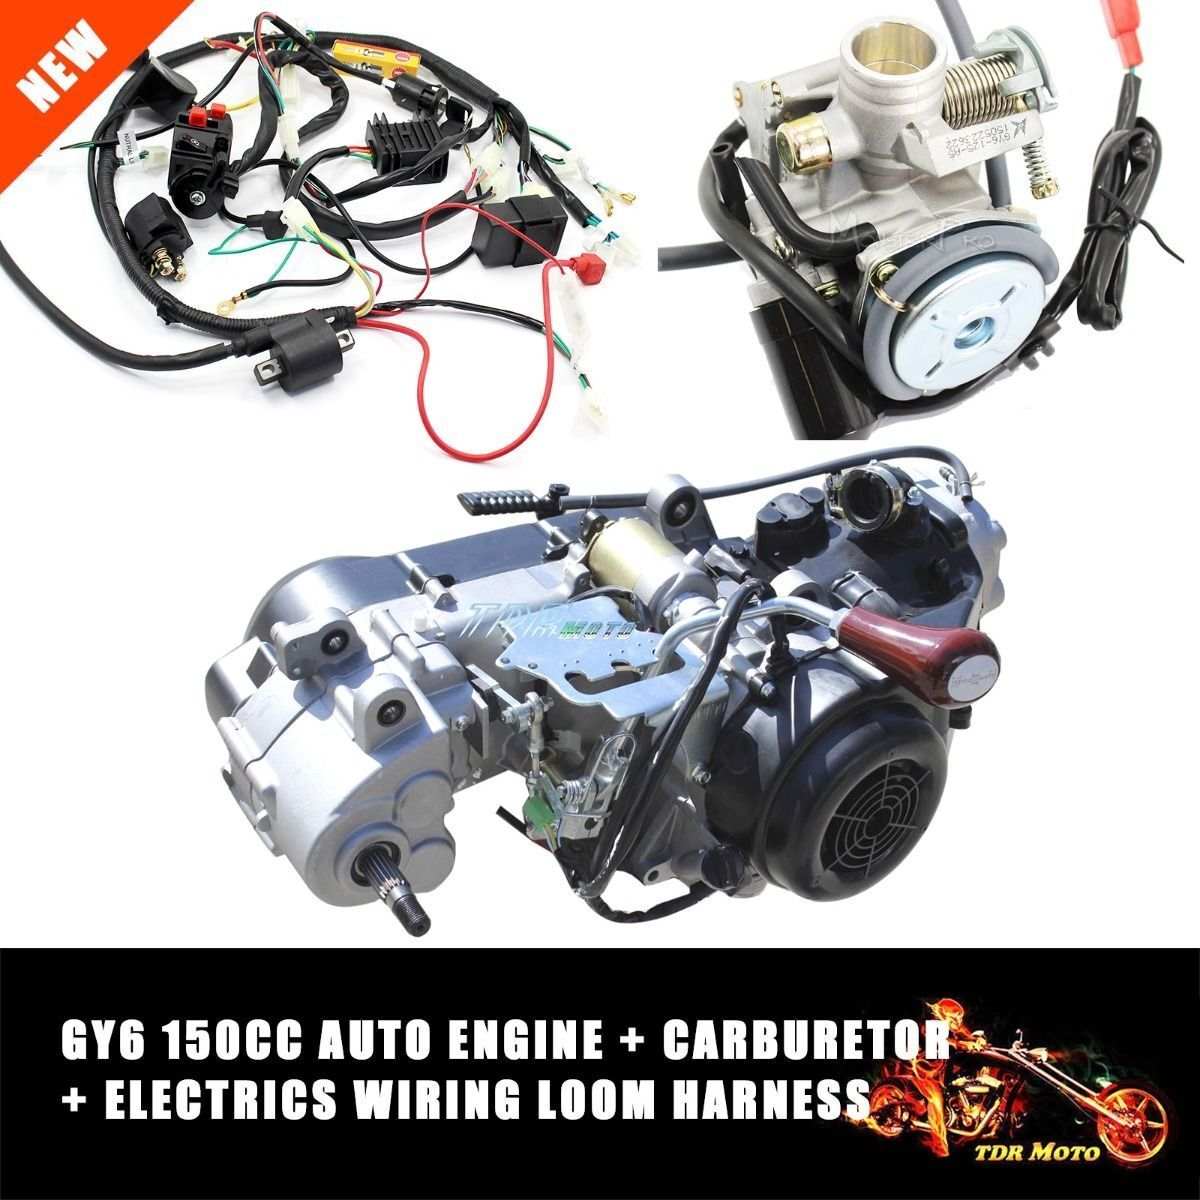 Gy6 150cc Fully Auto Reverse Gear Engine Wiring Loom Harness Vehicle Carburetor